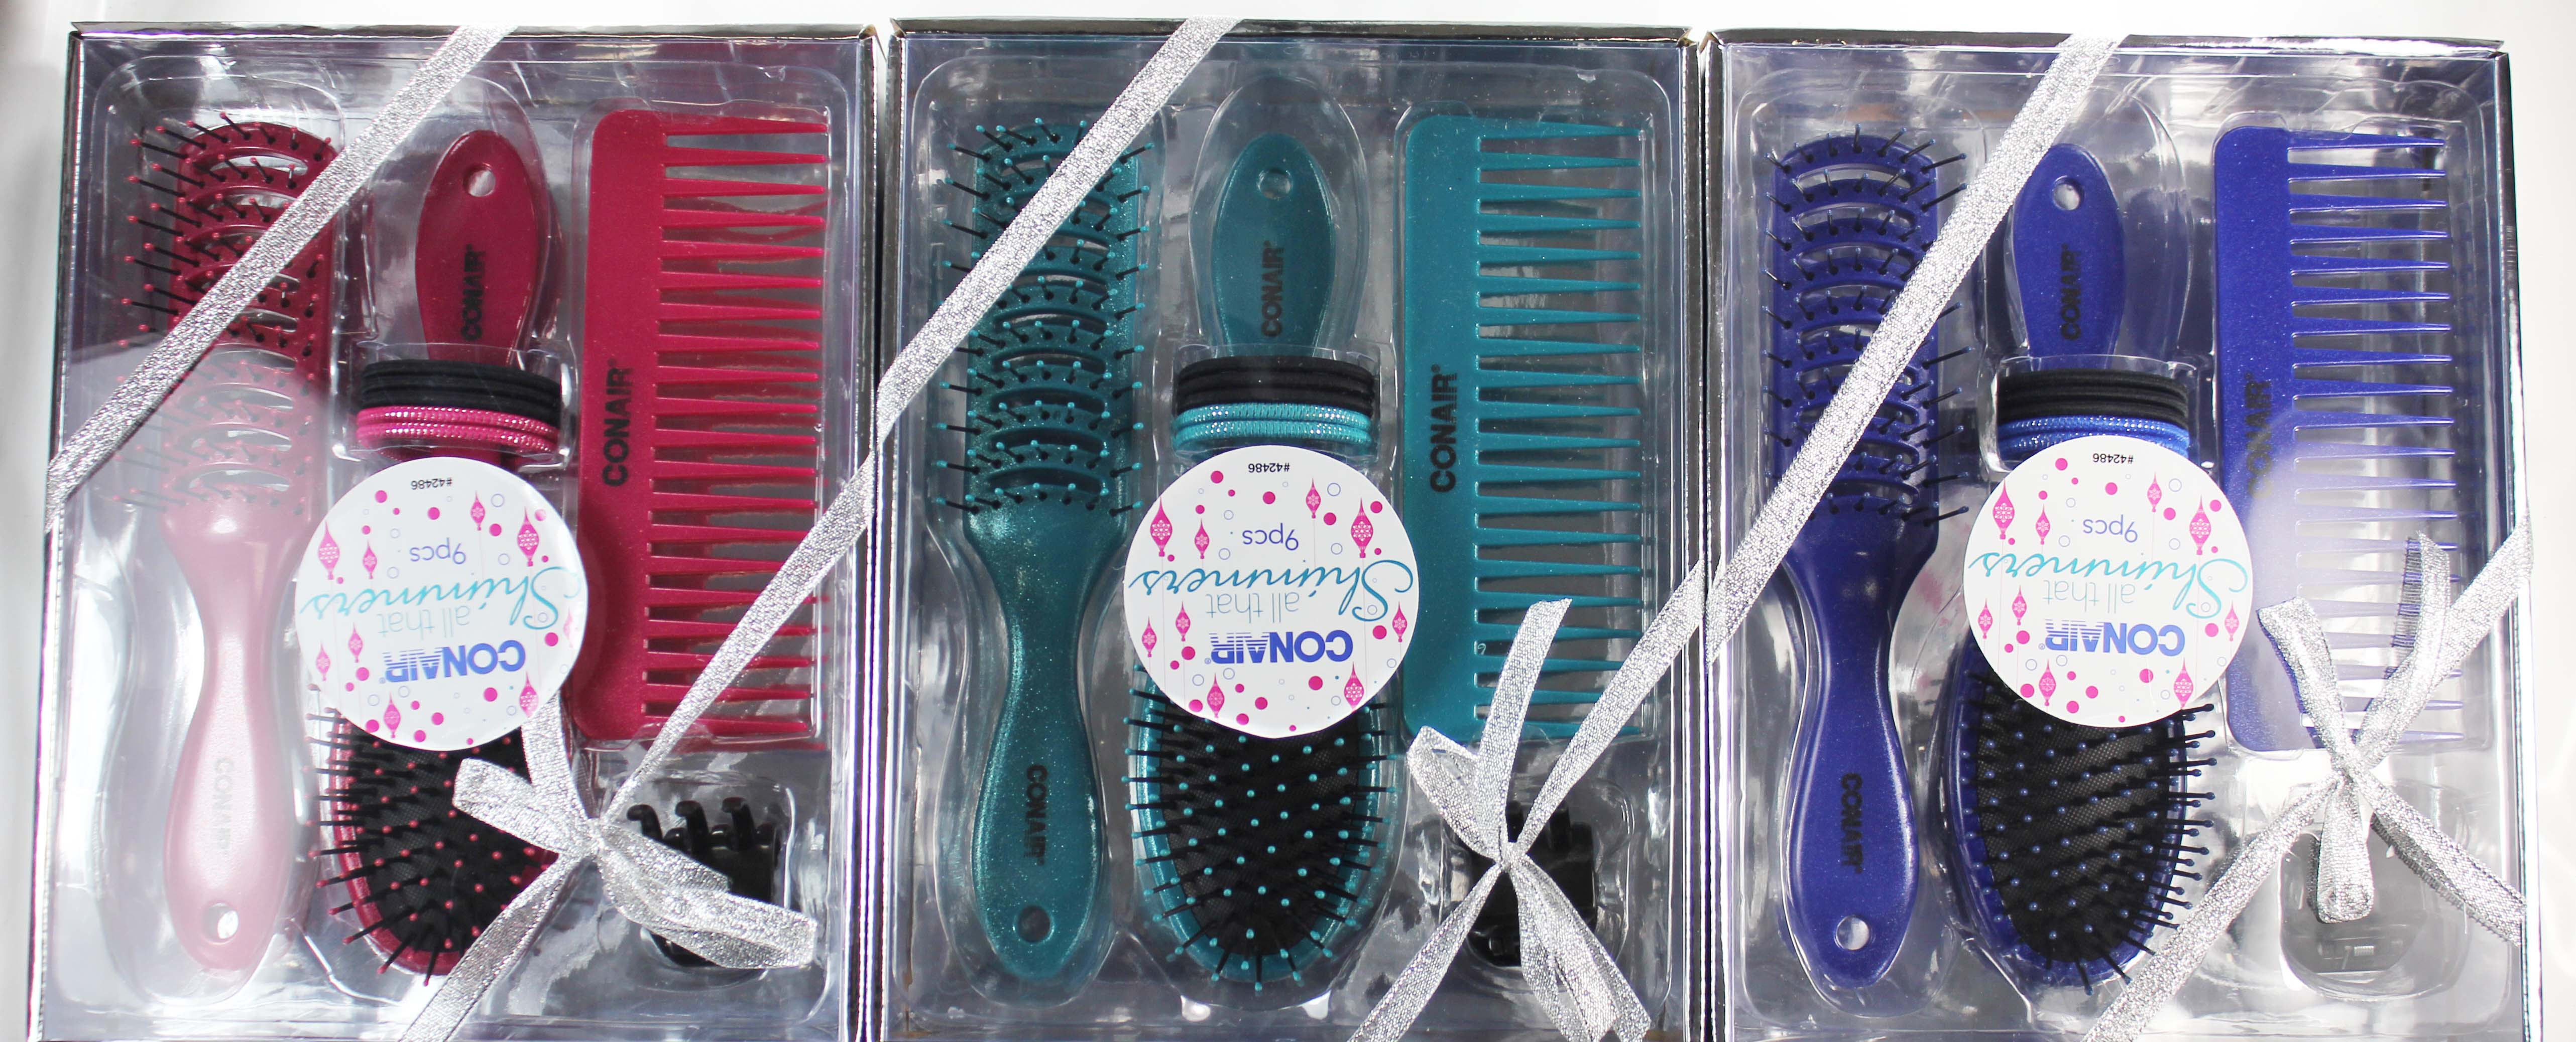 Conair Shimmers 9 piece gift set